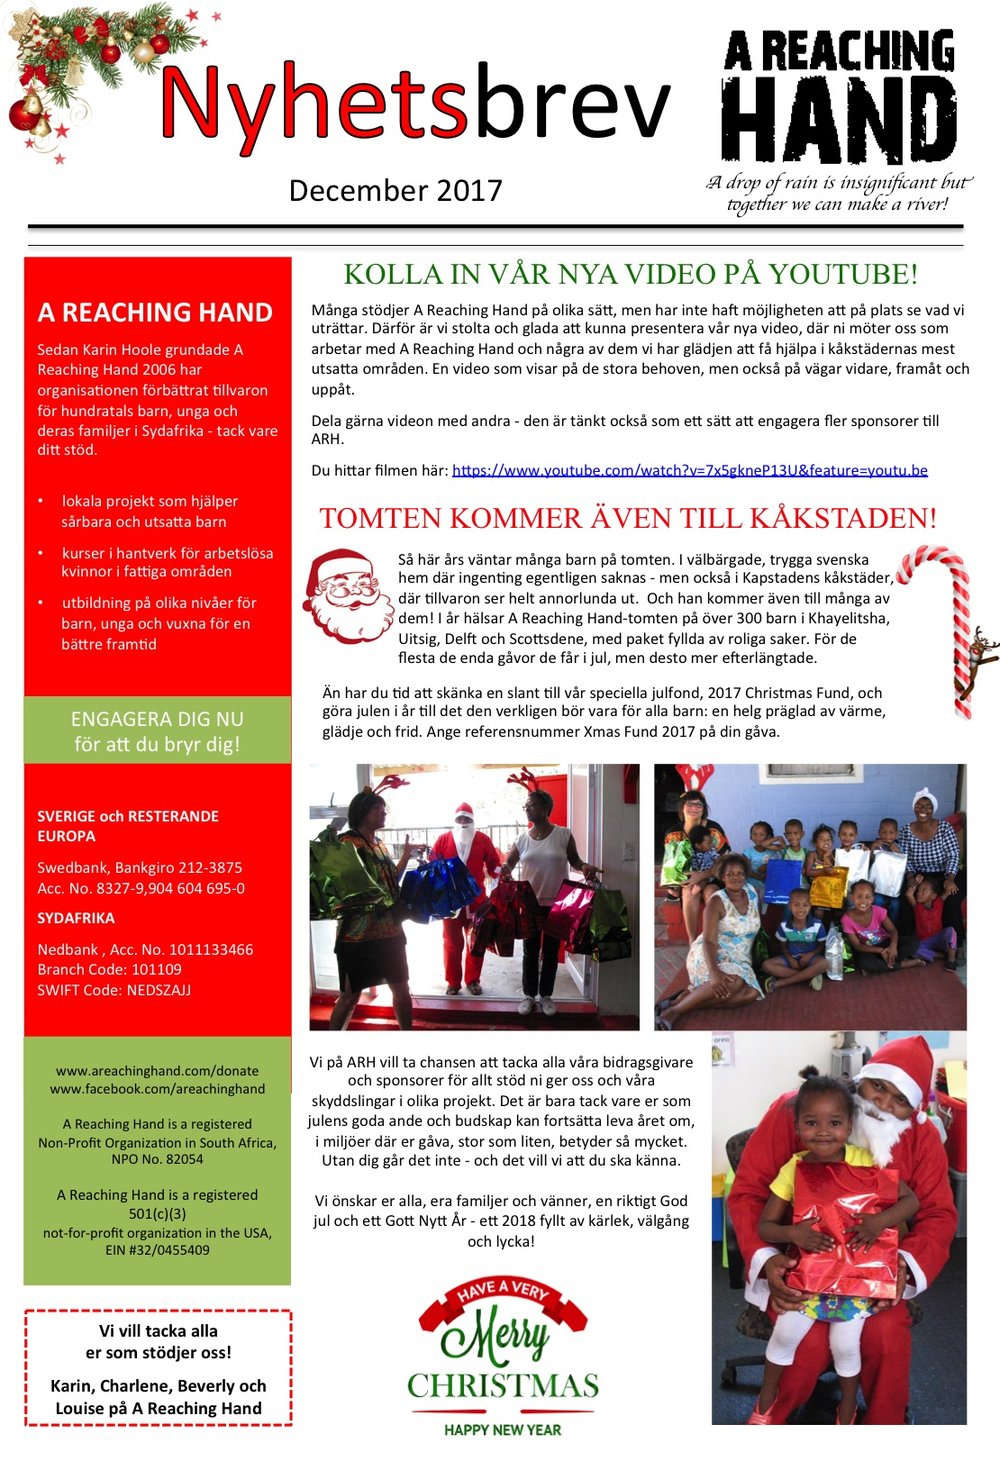 ARH Dec2017 Newsletter Swedish.jpg